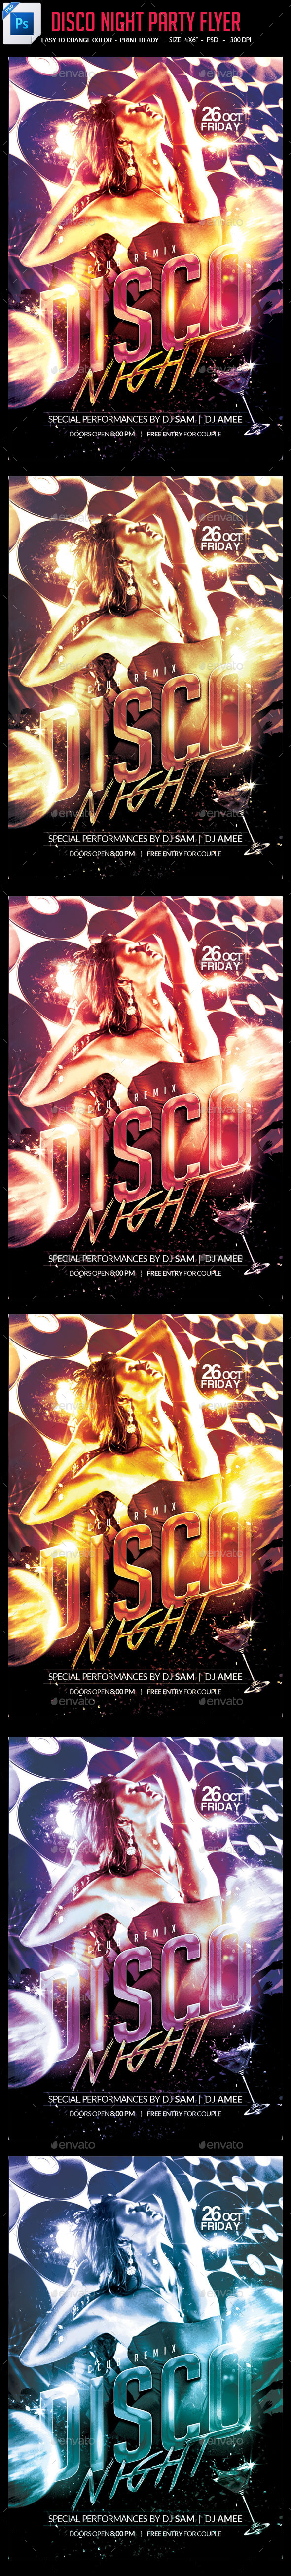 Disco Night Party Flyer - Clubs & Parties Events